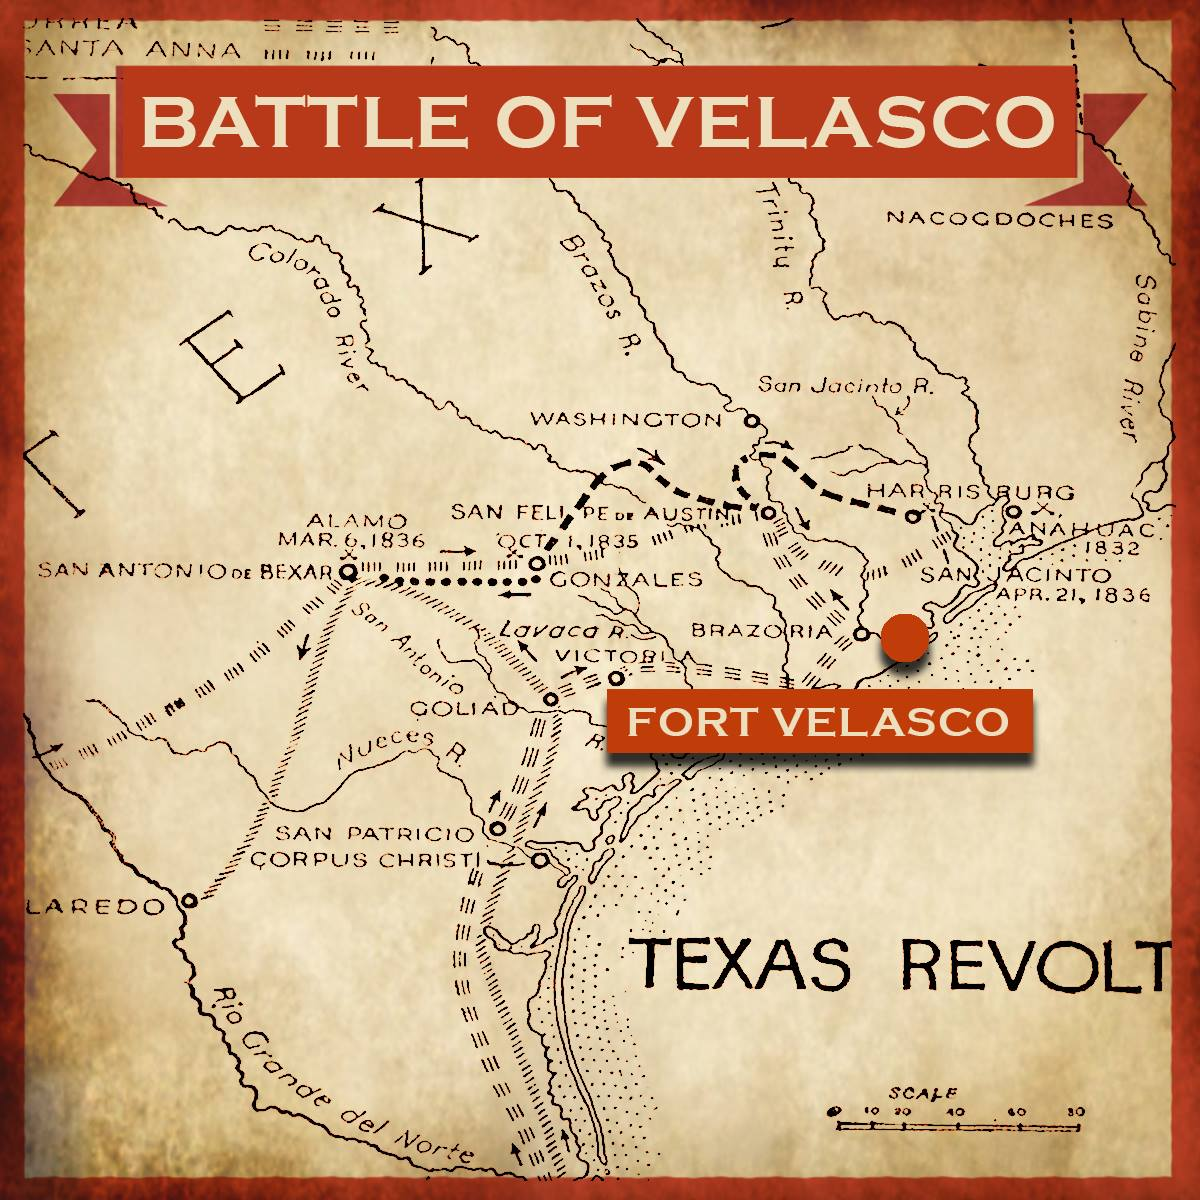 Map of Velasco Battle